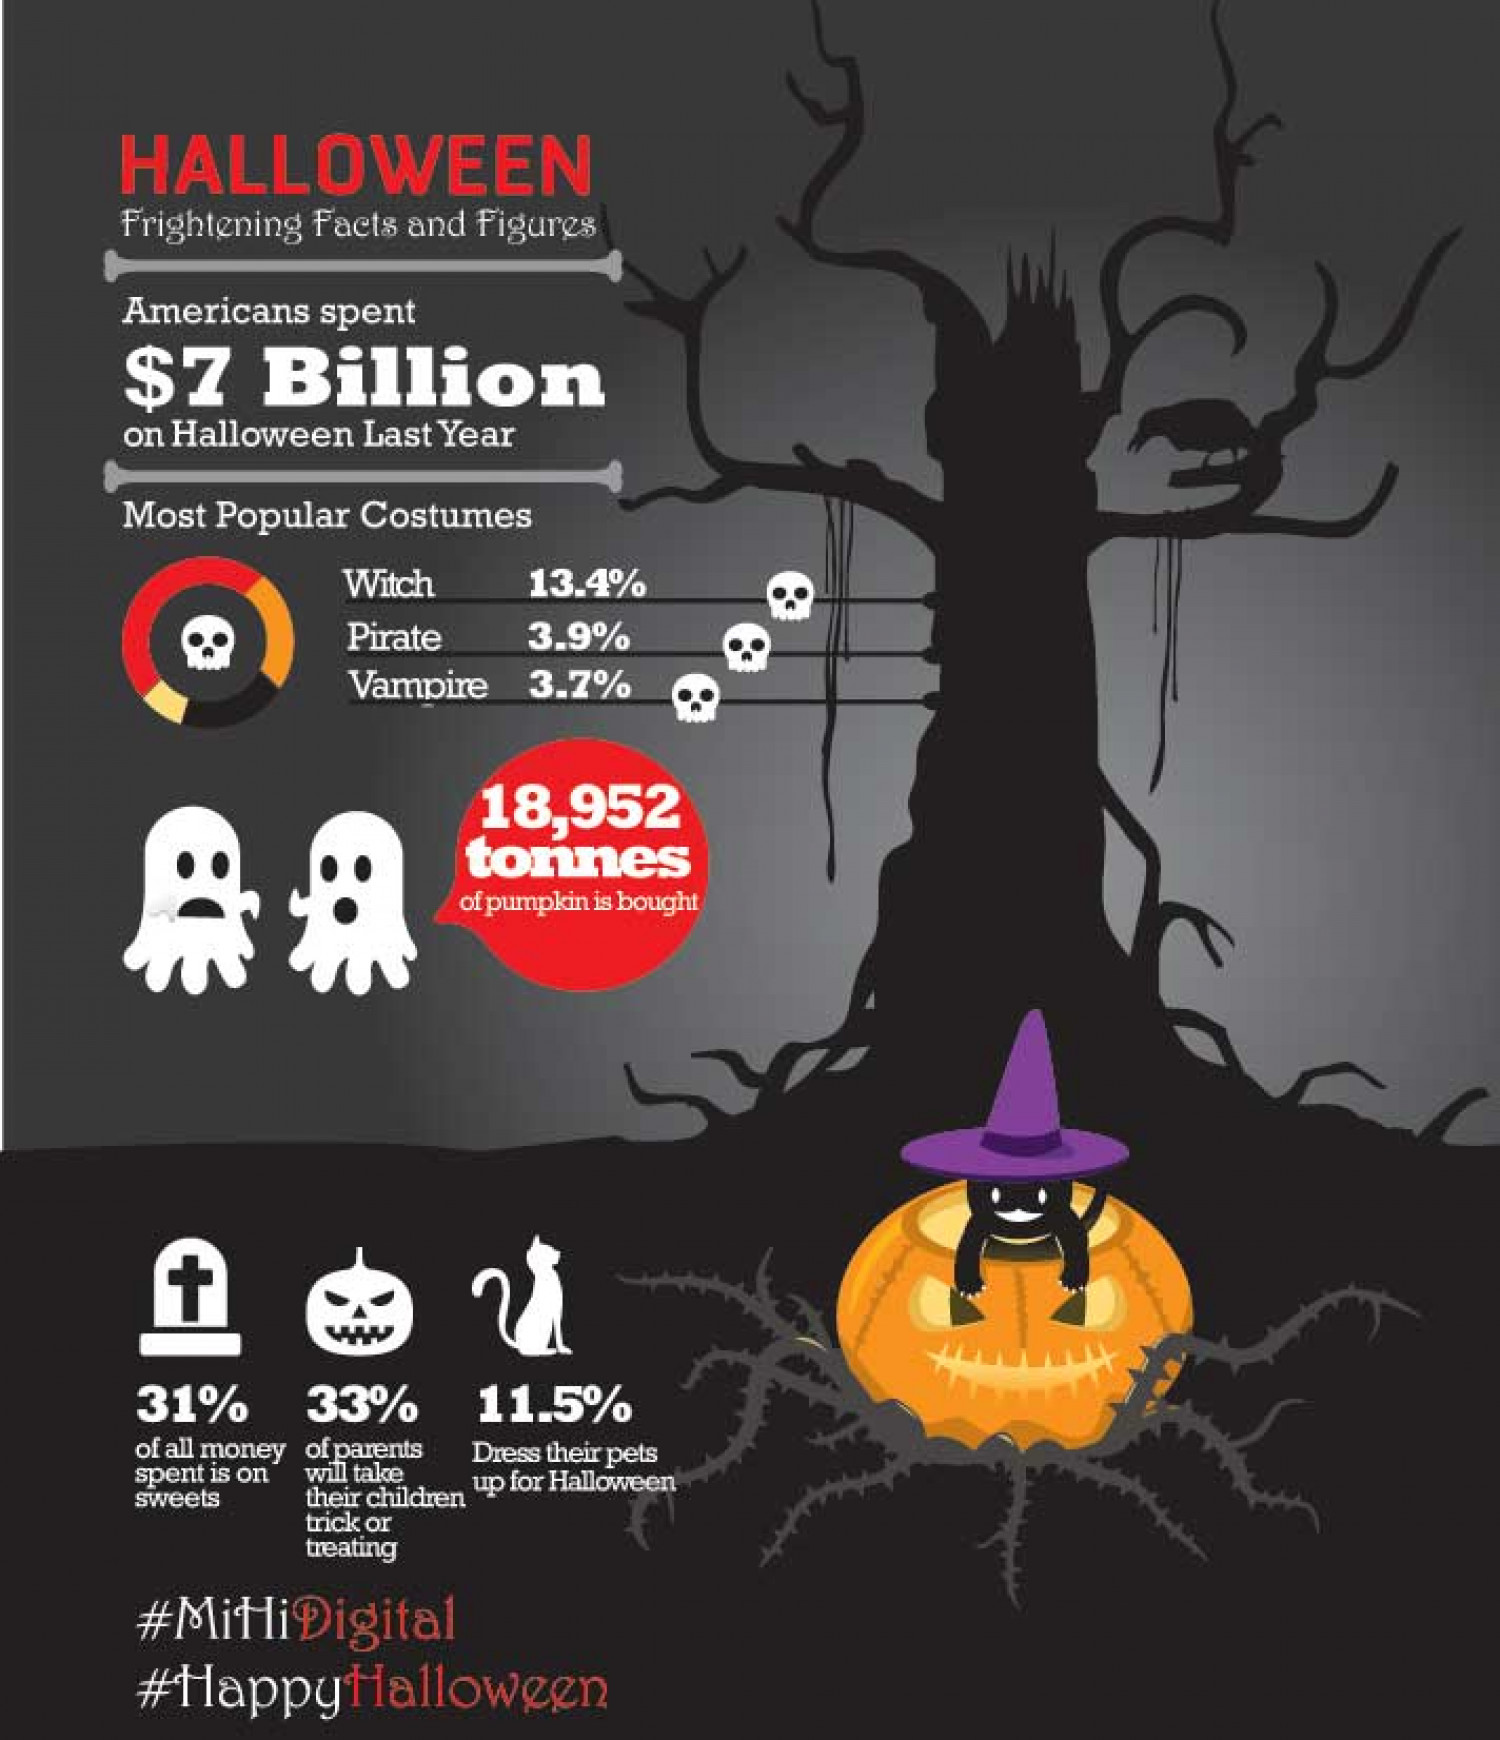 Halloween - Scary Facts | Visual.ly